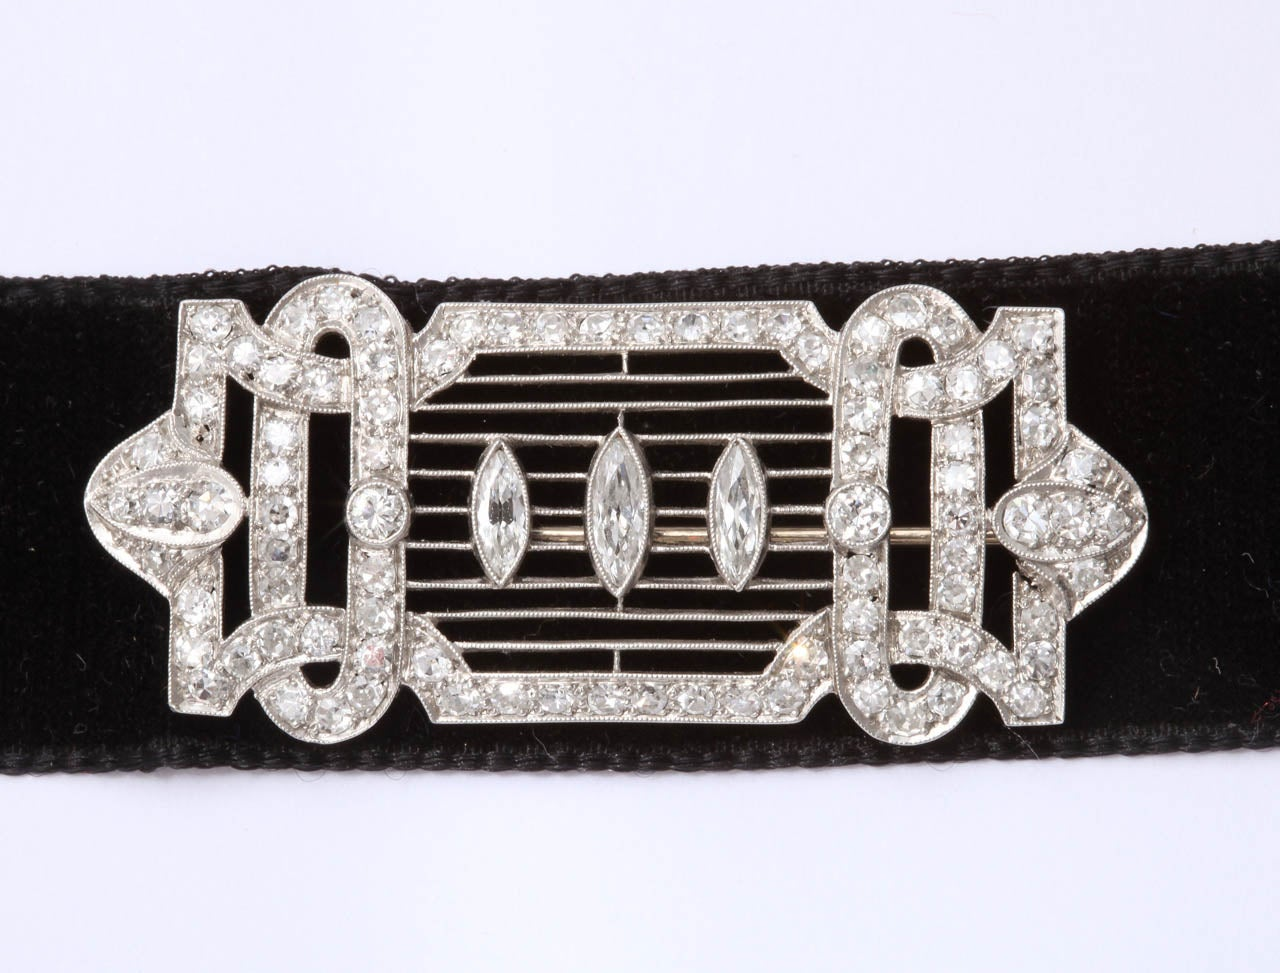 Art Deco Diamond Brooch In Excellent Condition For Sale In Hastings on Hudson, NY